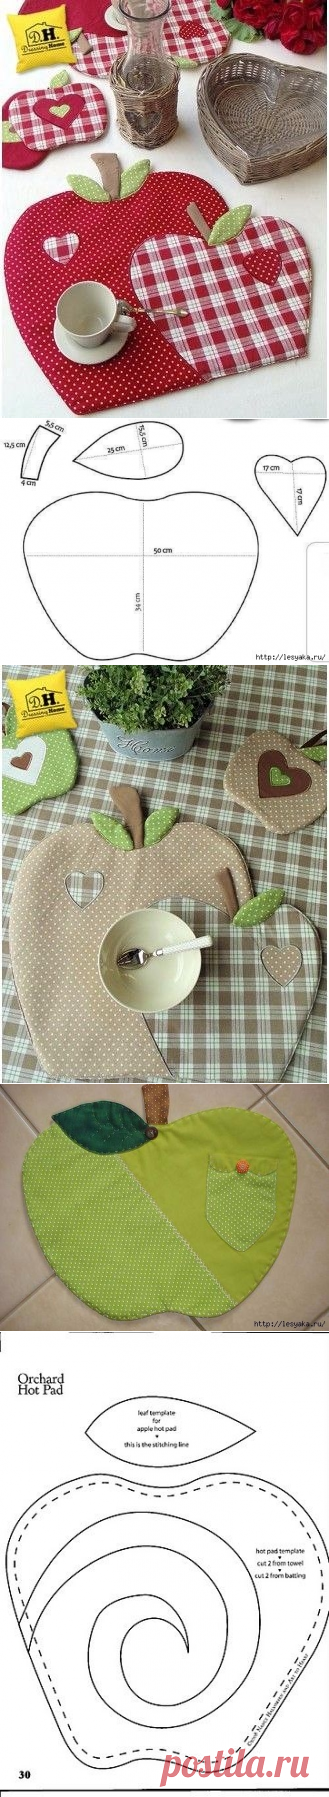 We sew apples for kitchen in style a patchwork